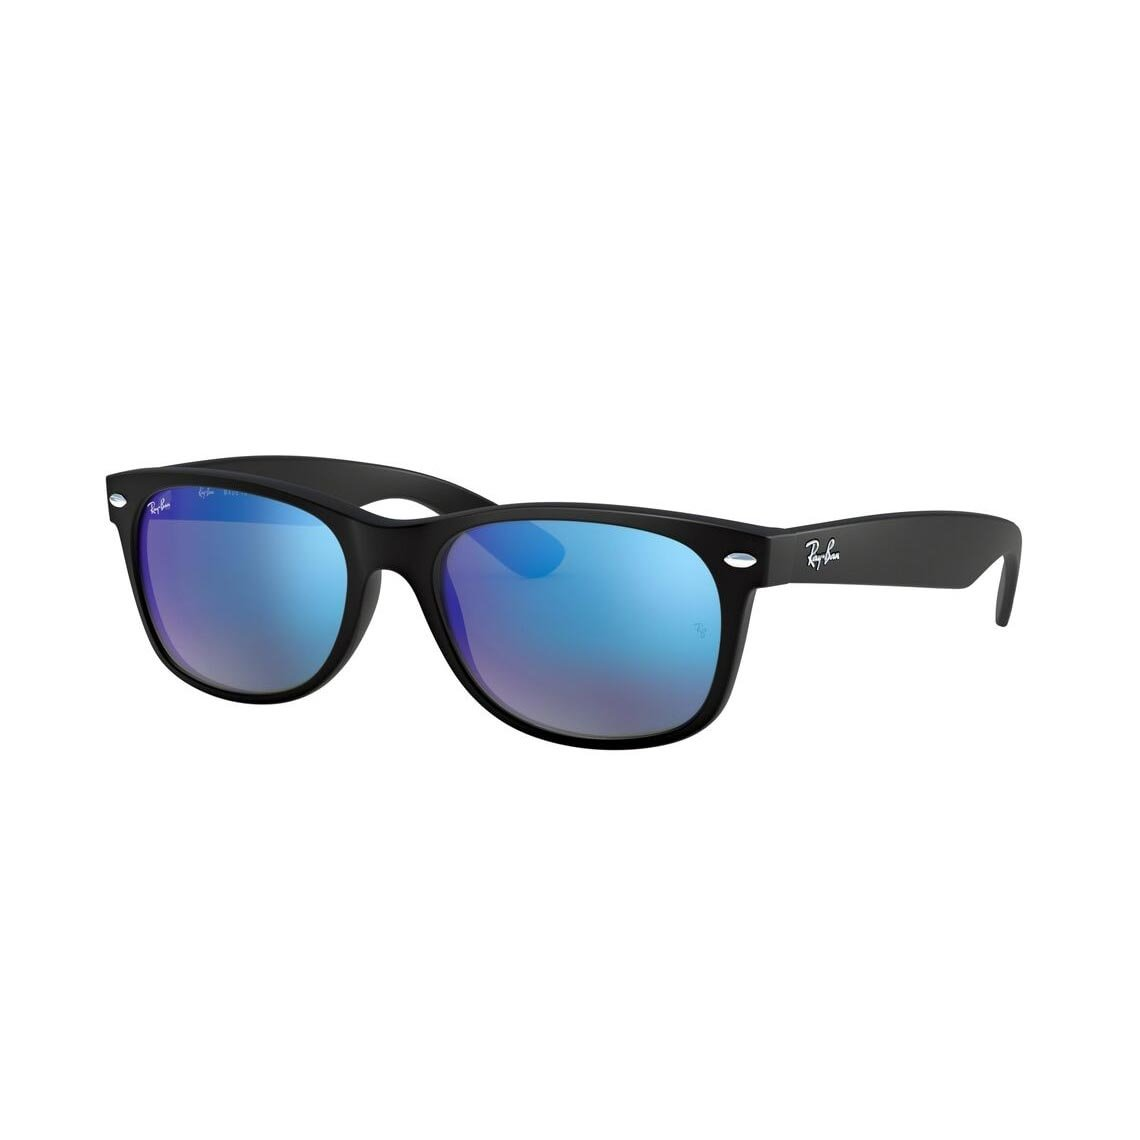 Ray-Ban New Wayfarer RB2132 622/17 55